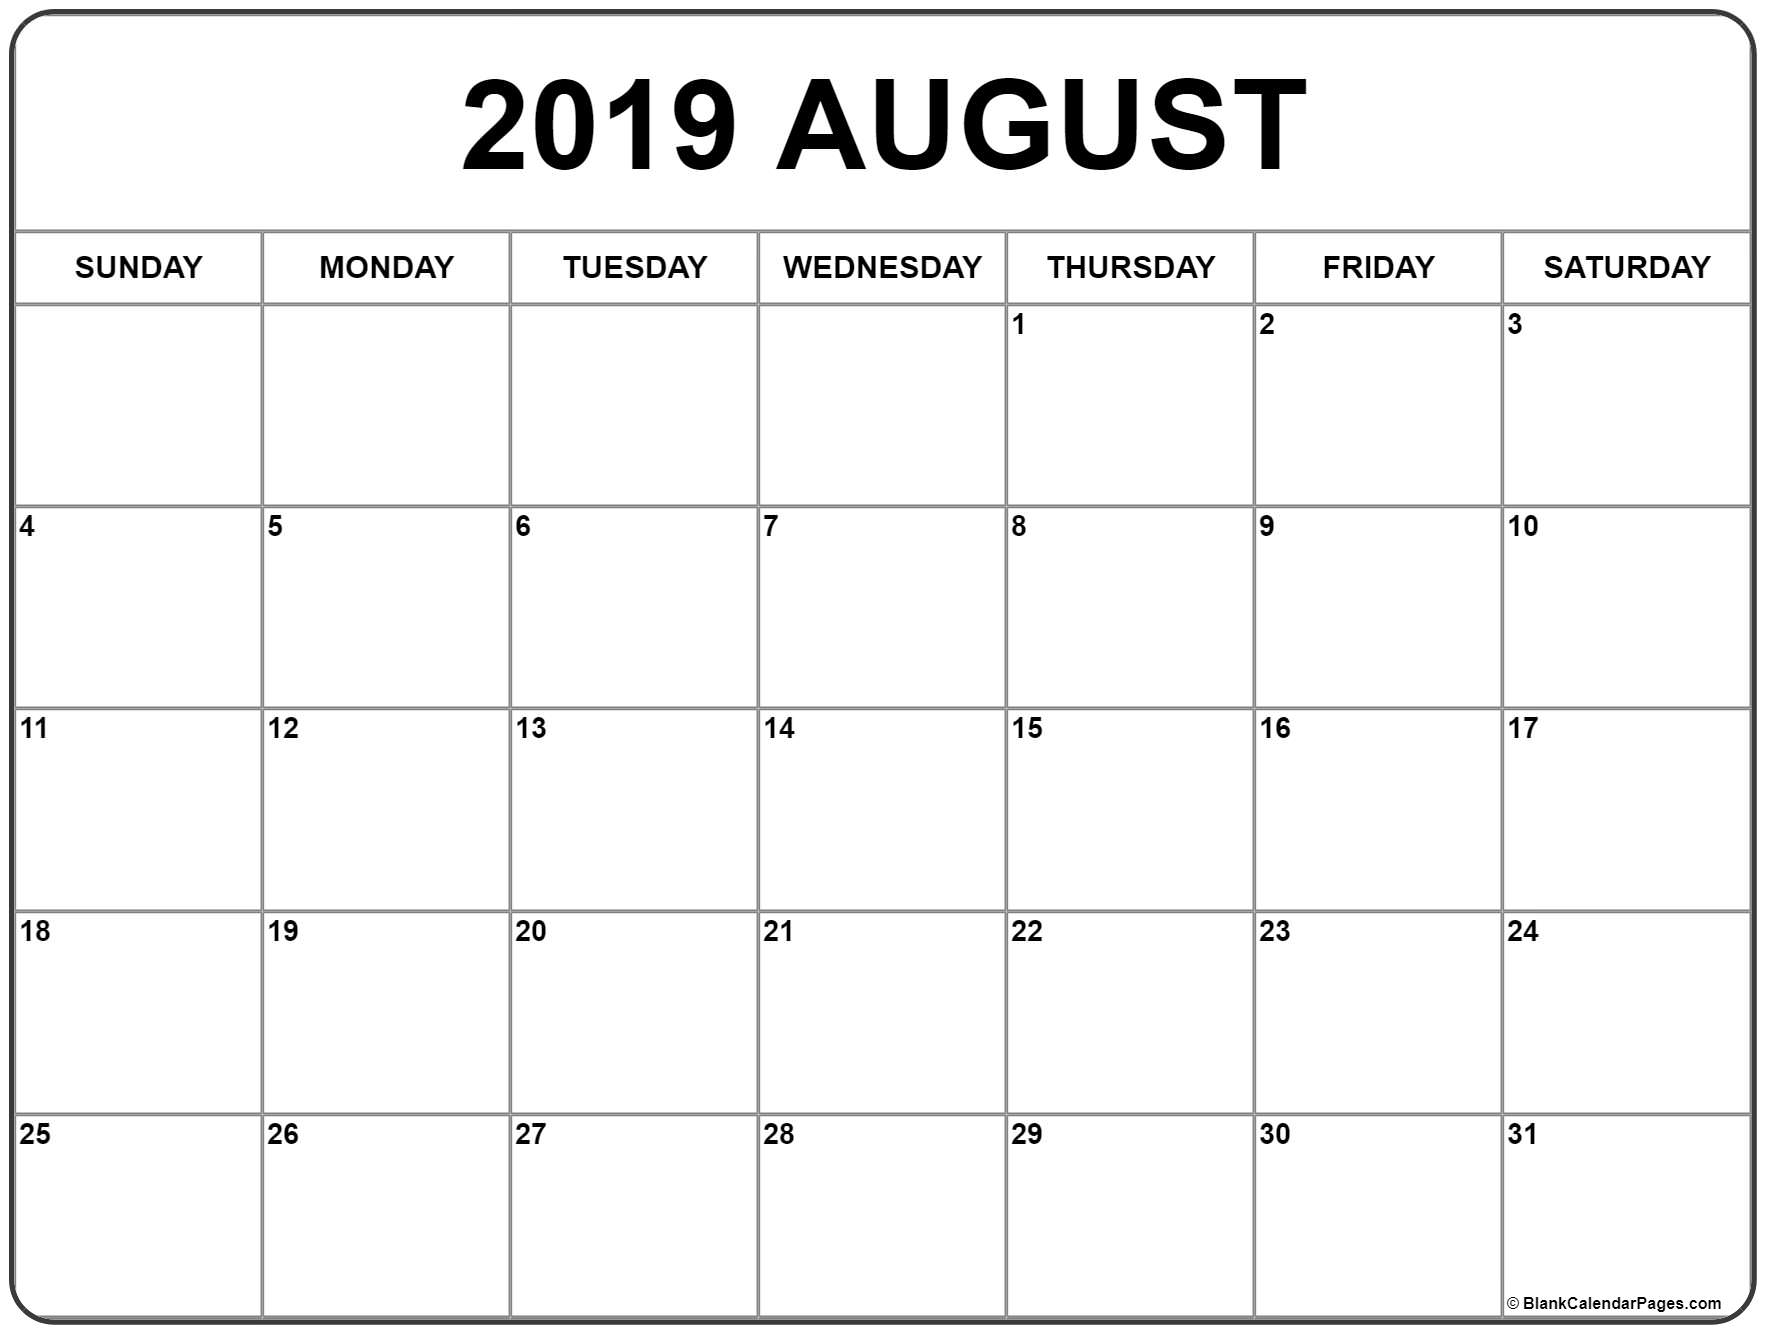 August 2019 Calendar | Free Printable Monthly Calendars intended for August Monthly Calendar Template Printable